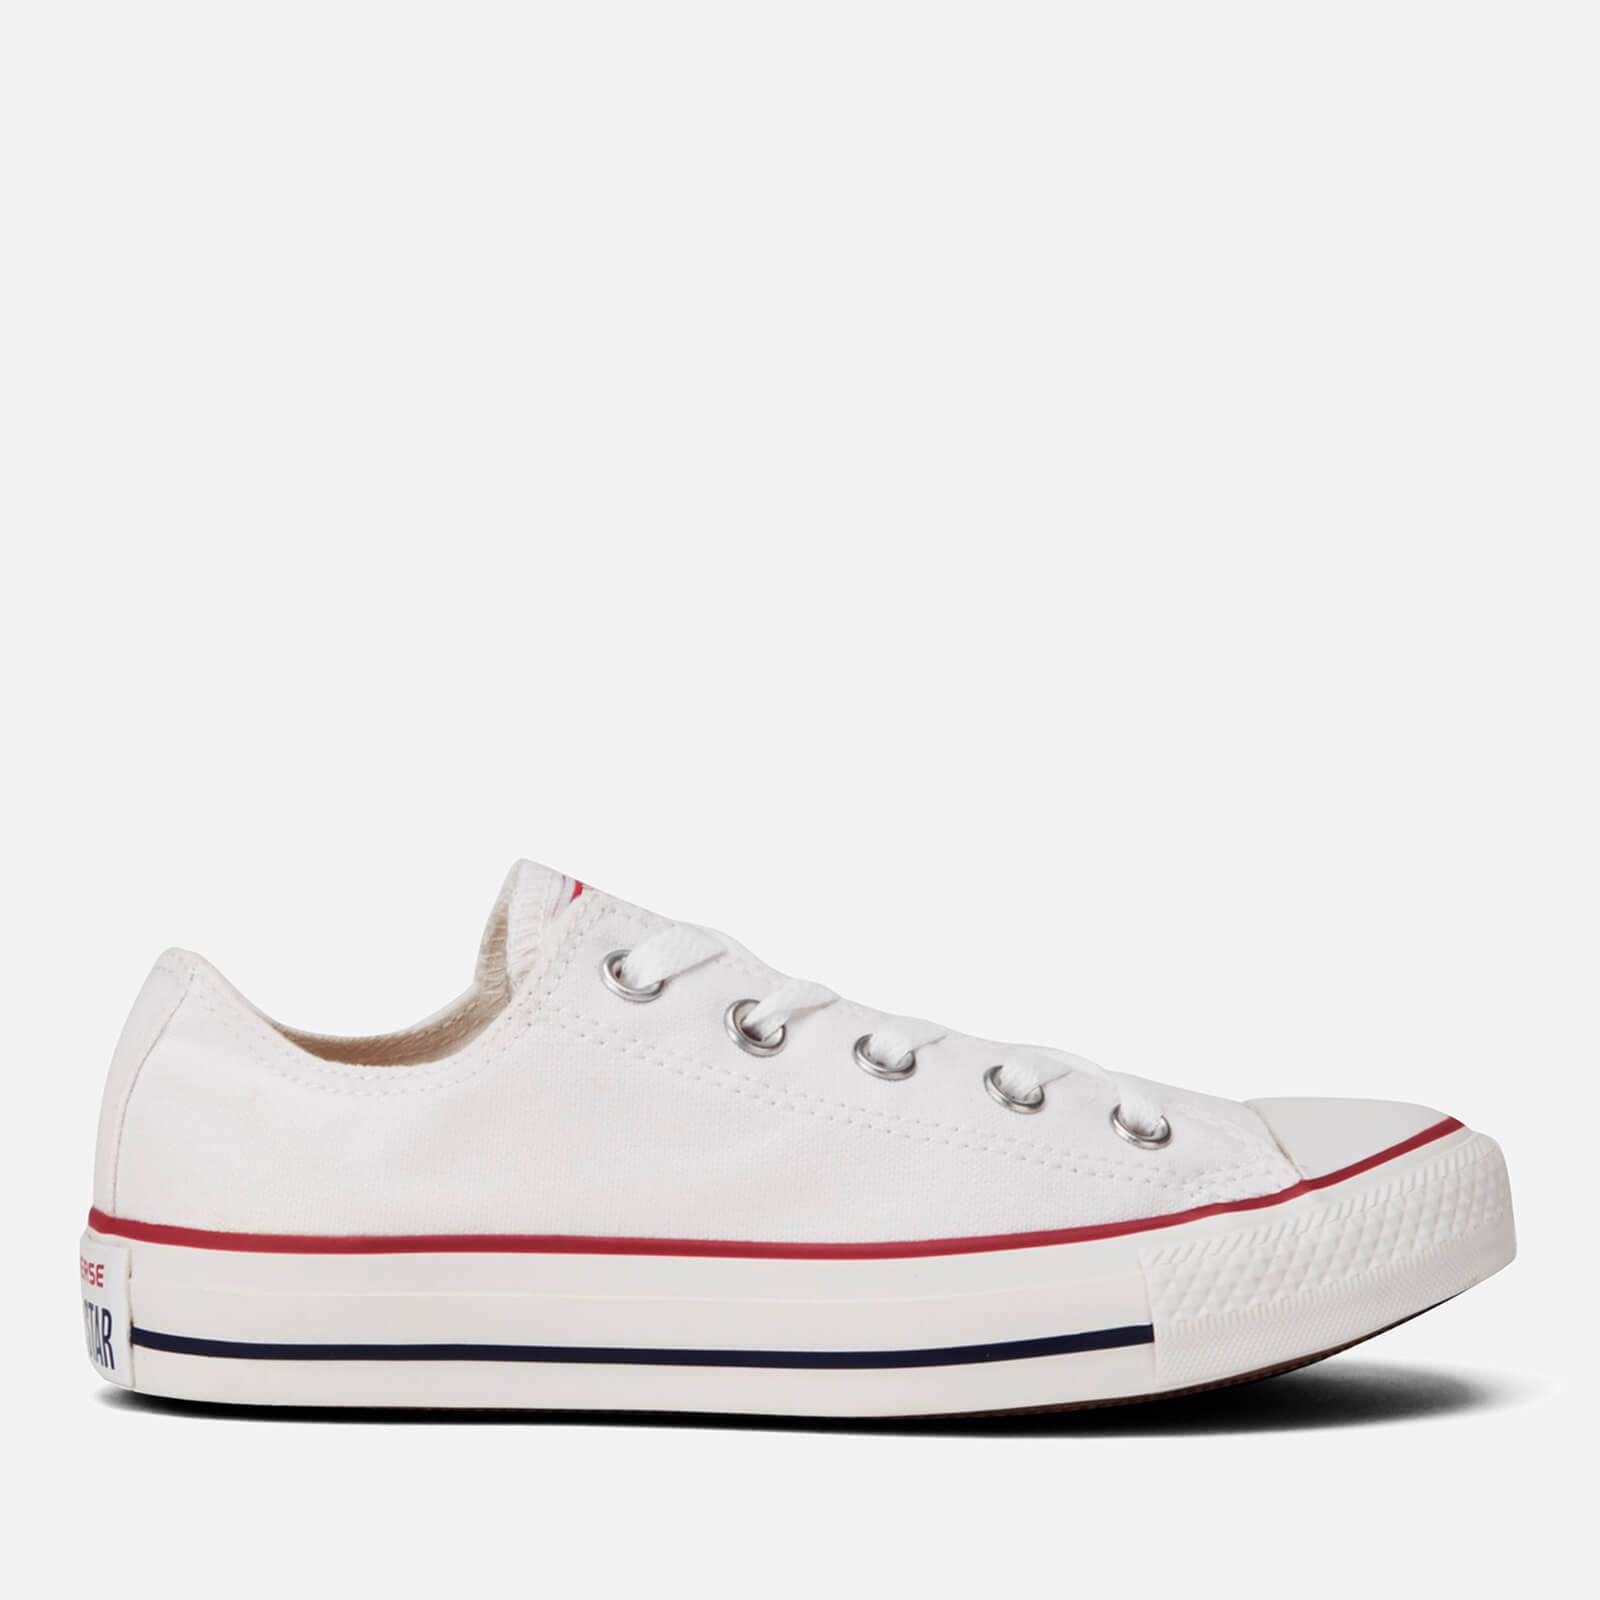 Converse Chuck Taylor All Star Ox Canvas Trainers - Optical White - UK 9